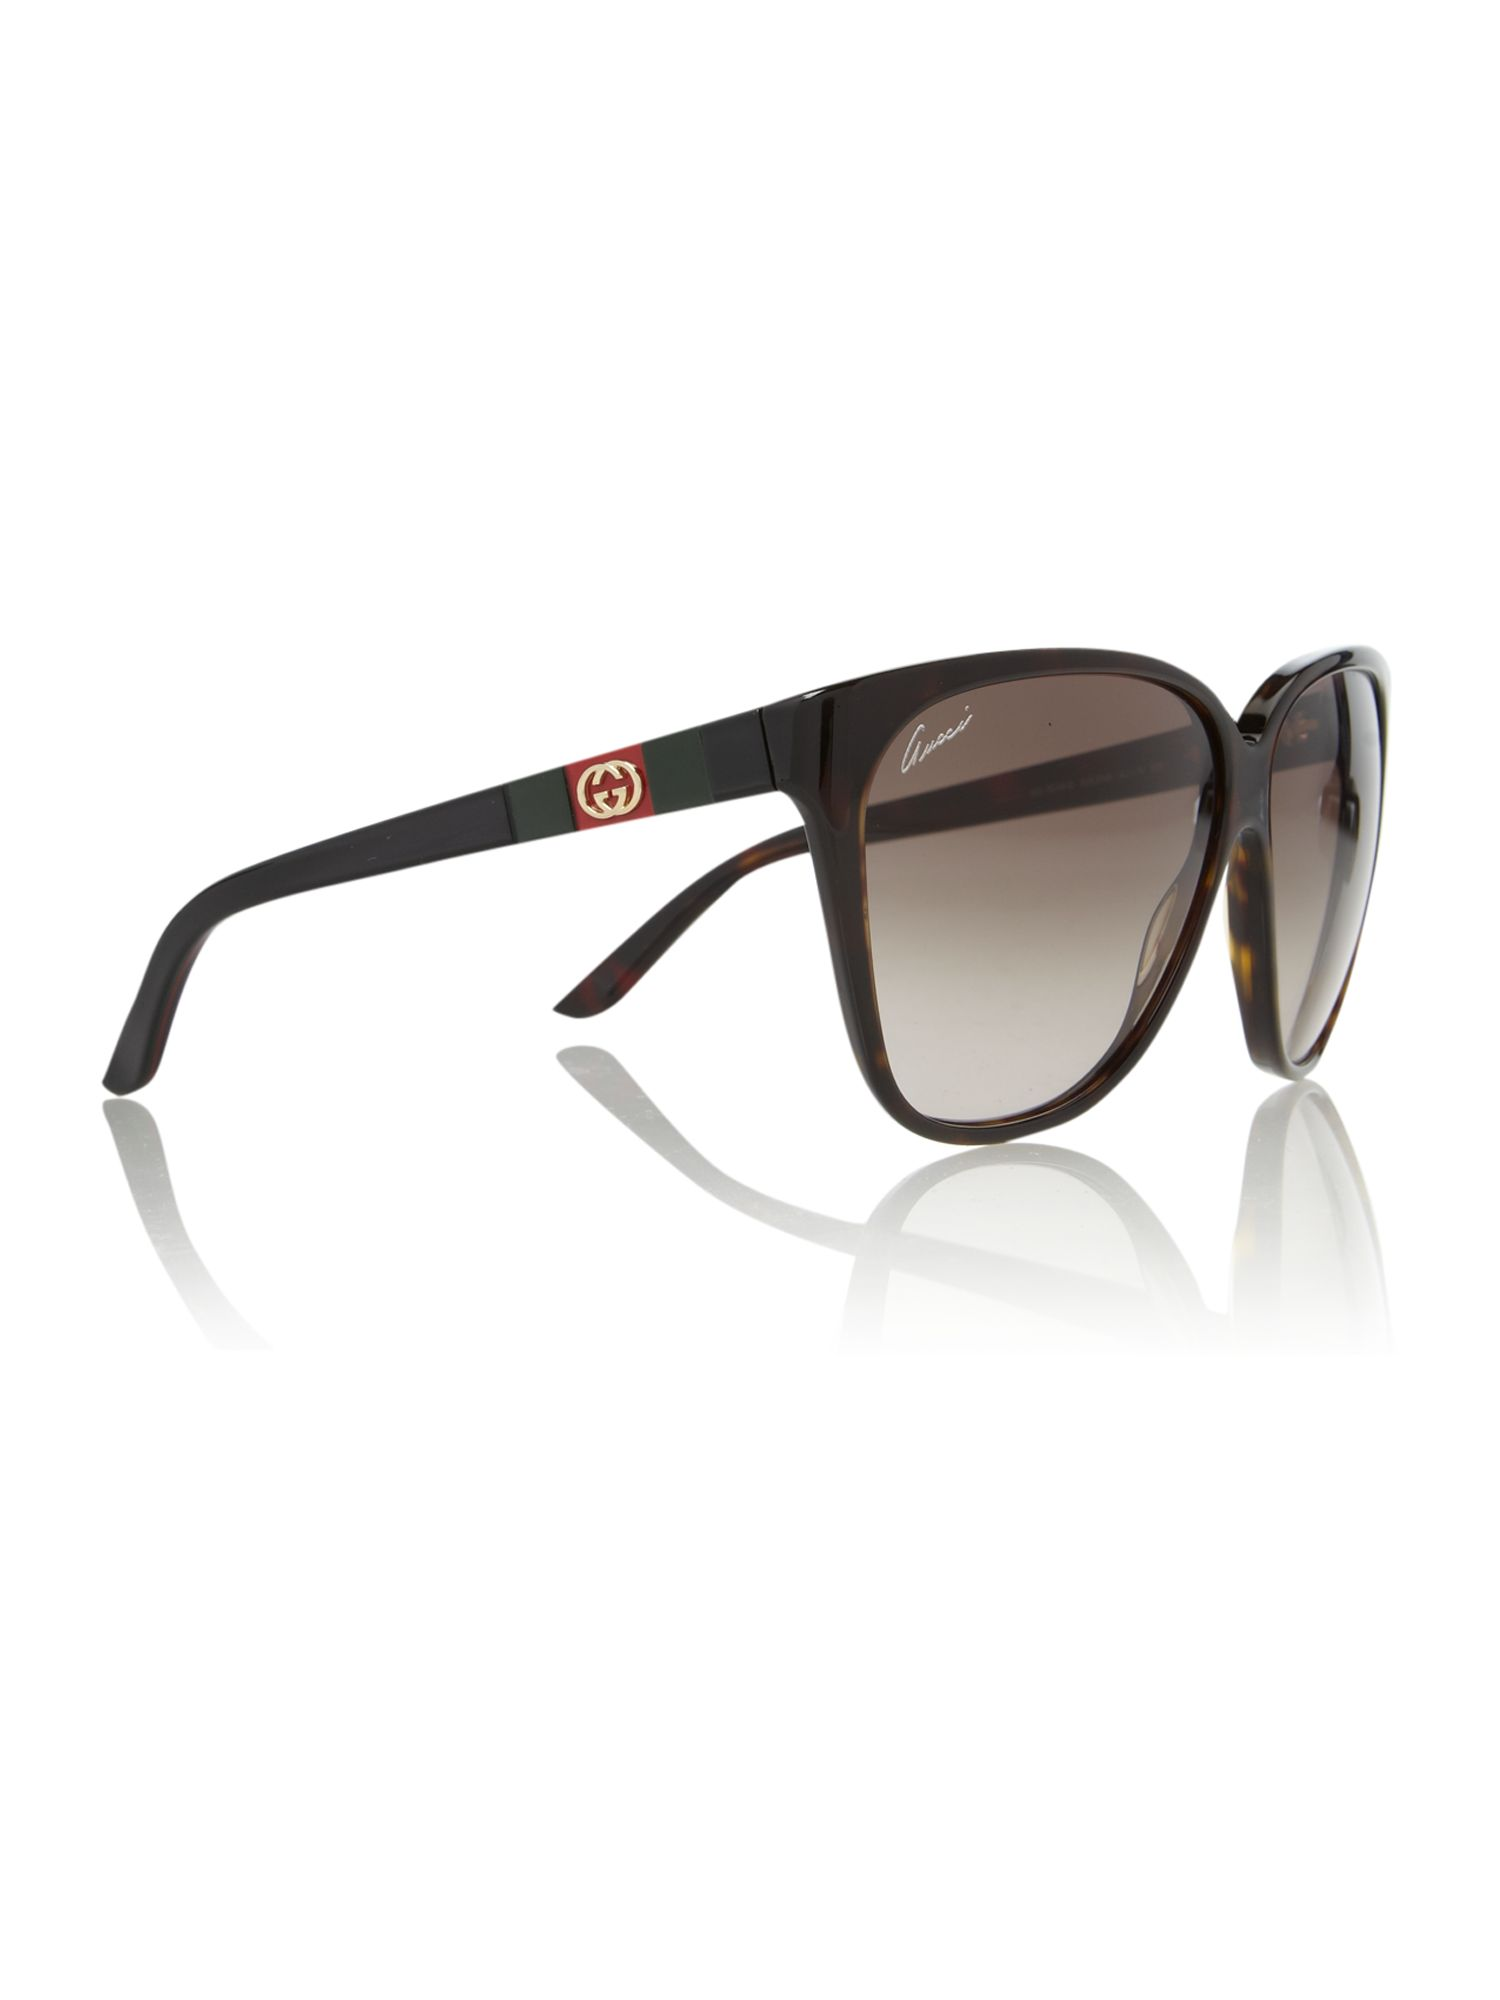 Ladies GG3539/S Dark Havana Sunglasses